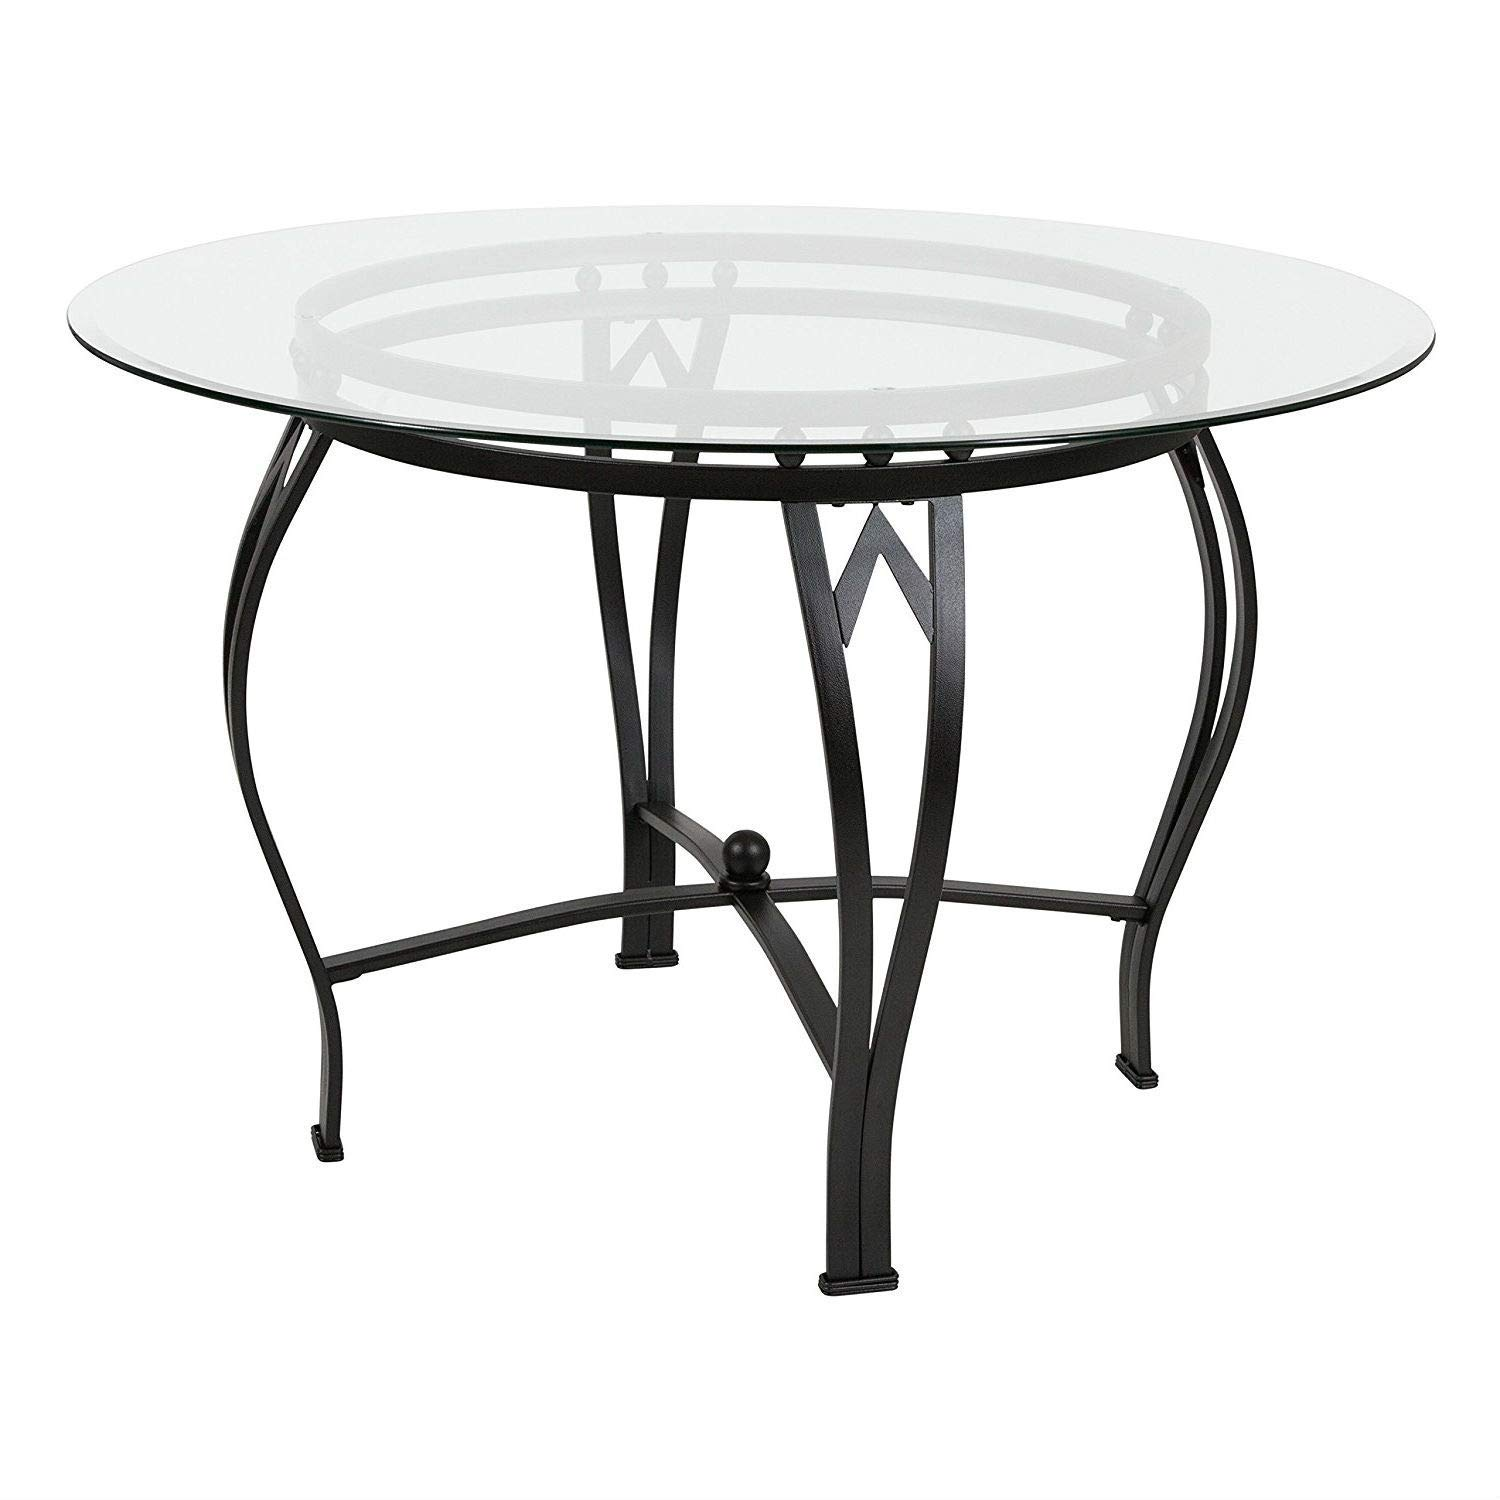 Modern Round Glass Dining Table Cheap Glass Dining Table Find Glass Dining Table Deals On Line At